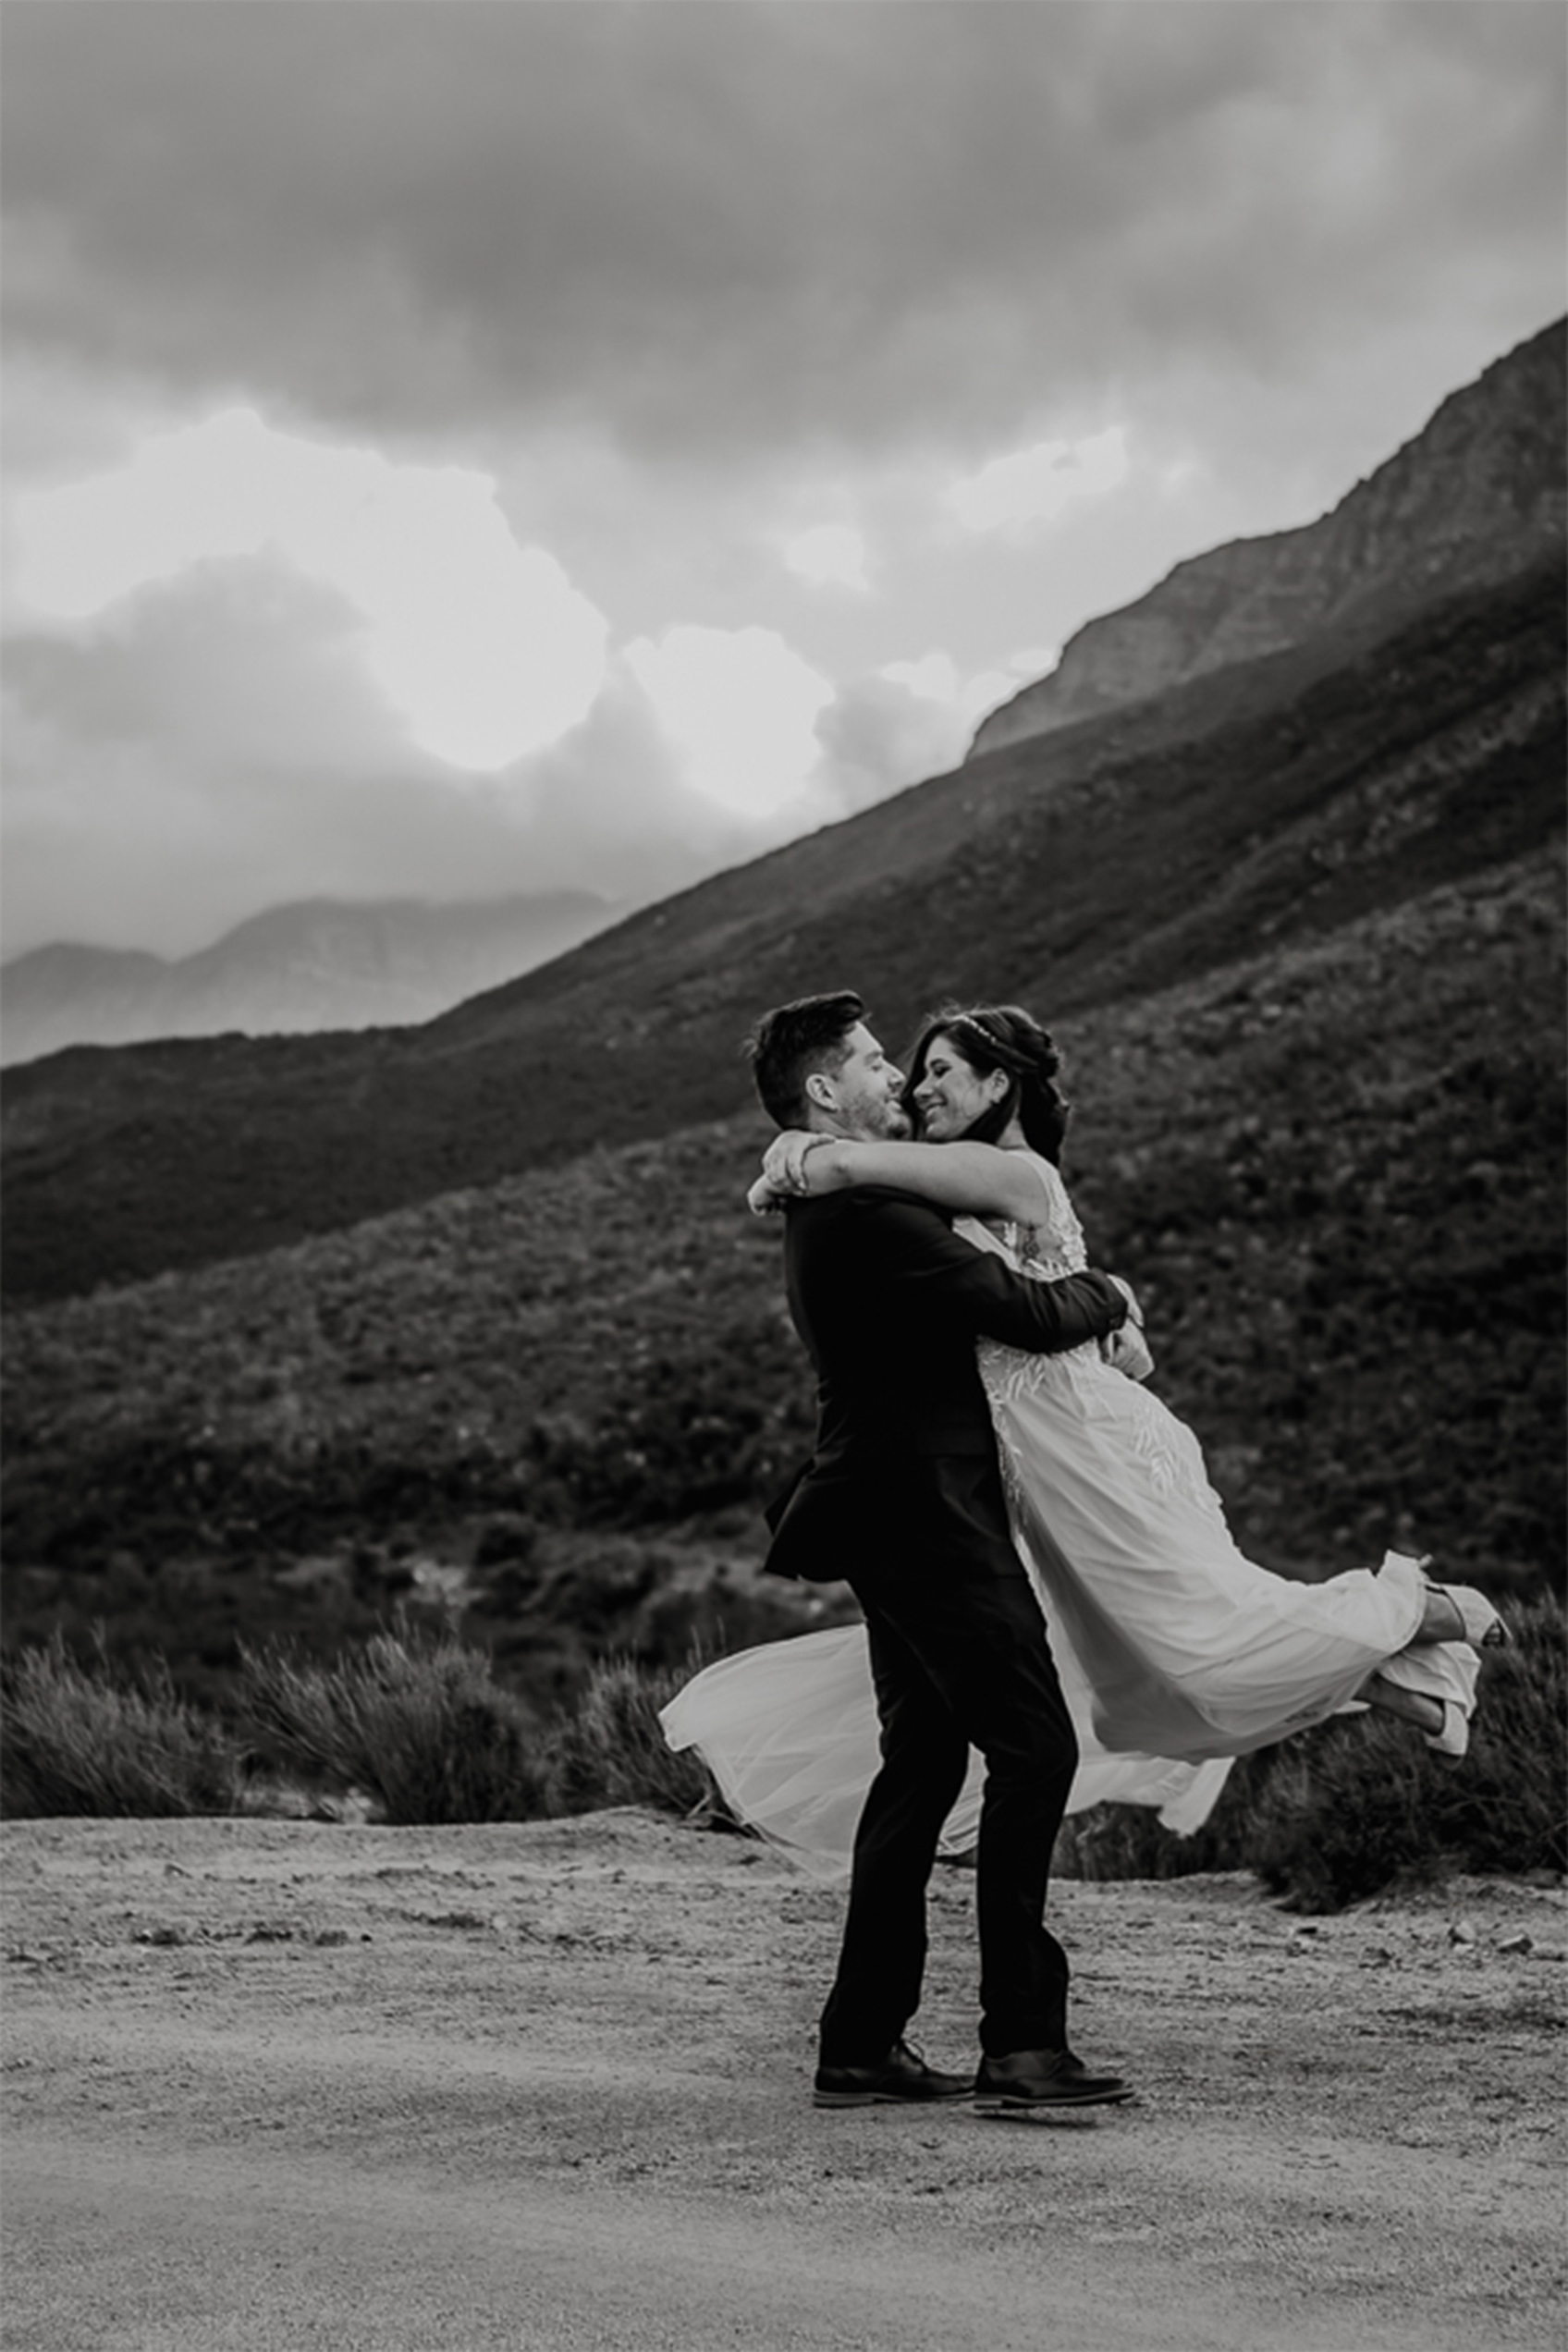 Just Frame Me Photography - Photographers Cape Town